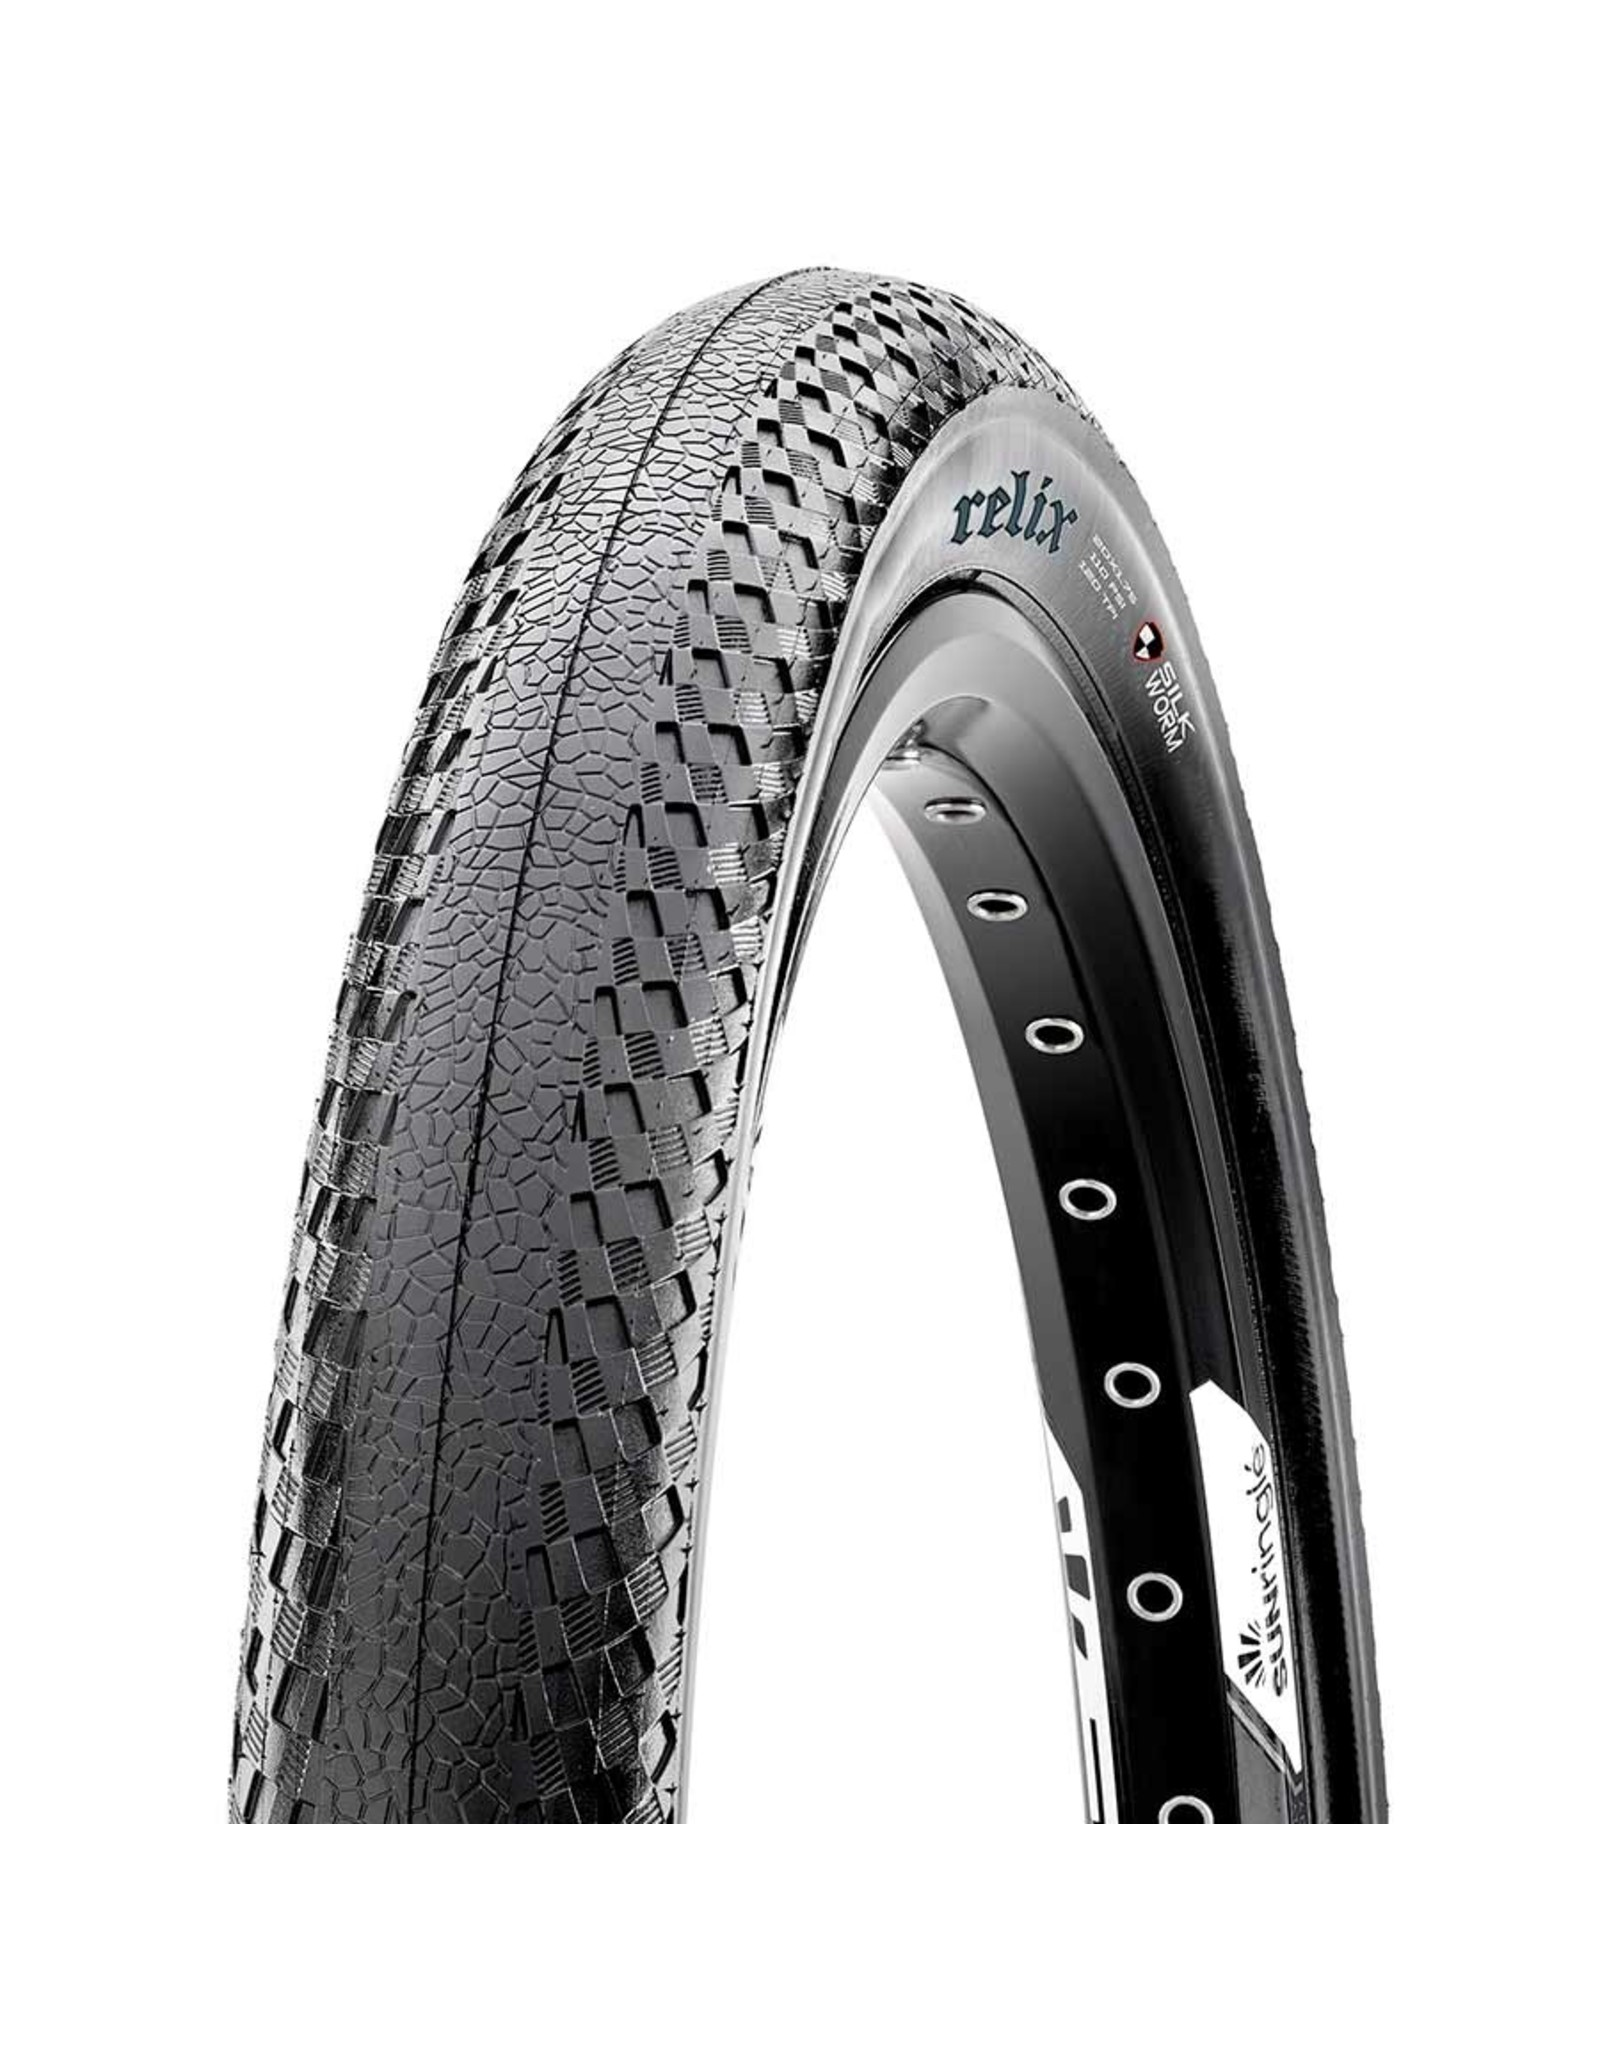 Maxxis, Relix, Tire, 20''x1.75, Folding, Clincher, Dual, SilkShield, 120TPI, Black